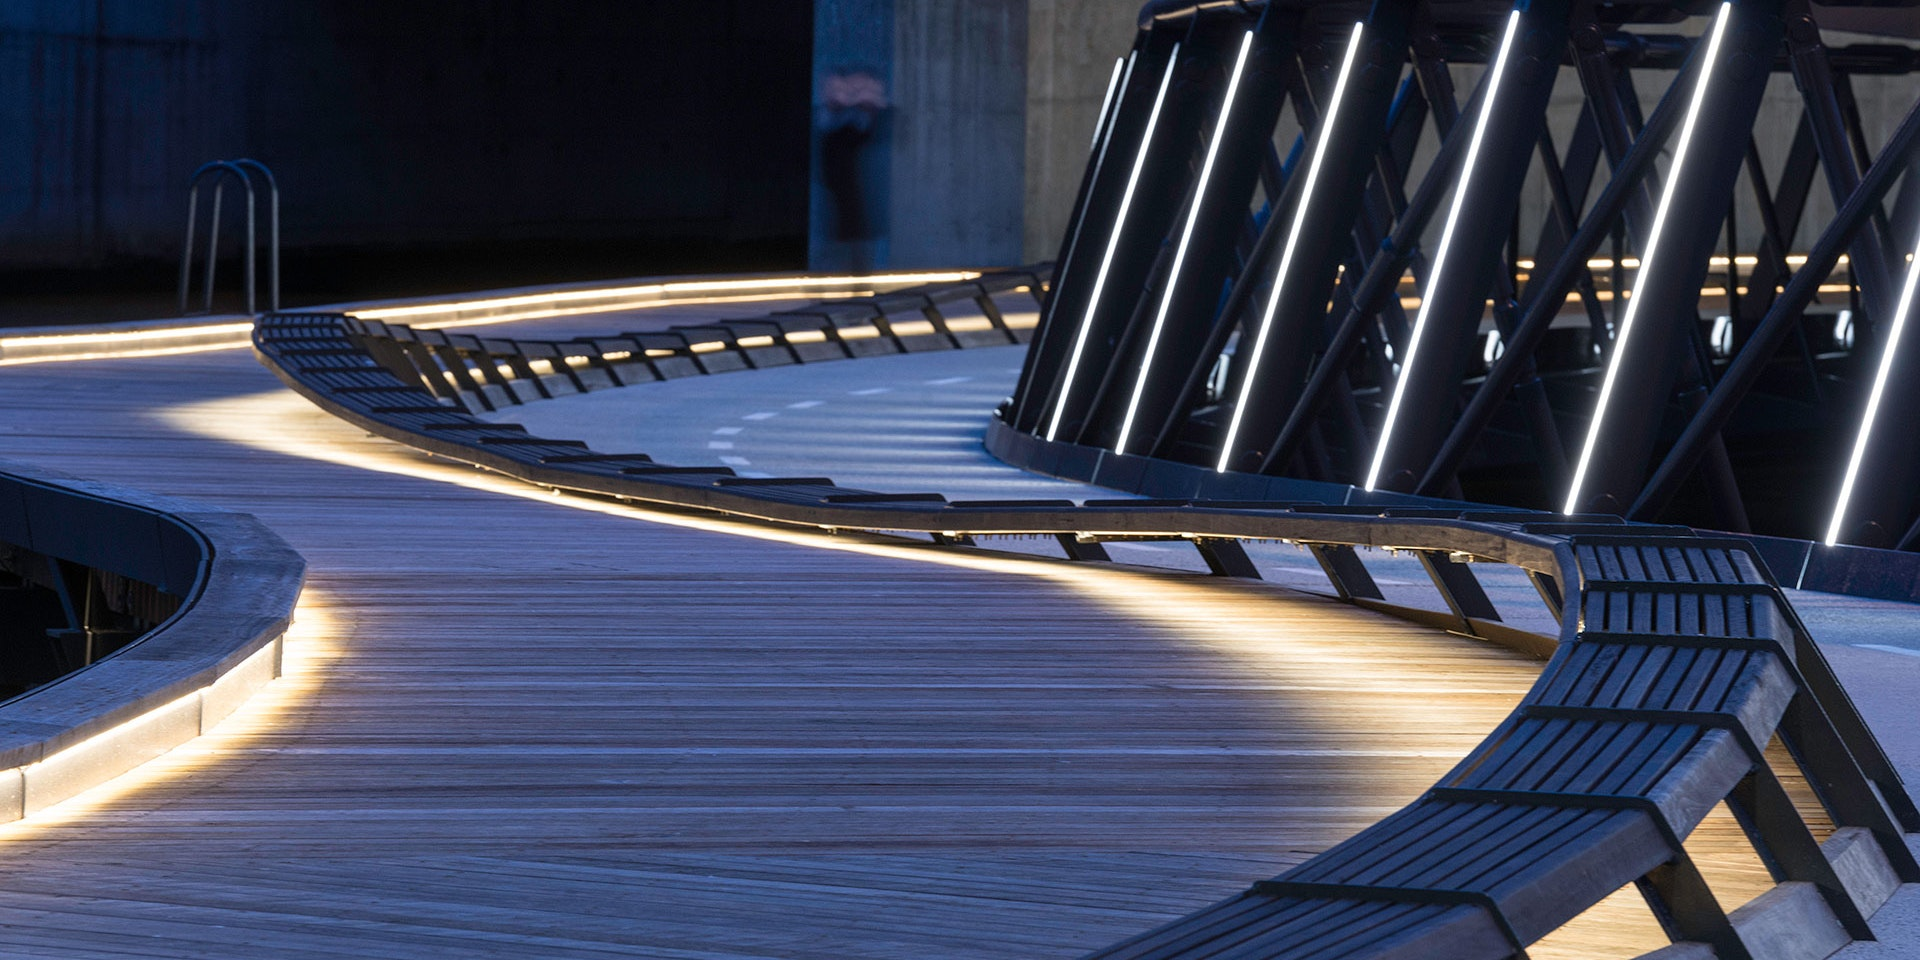 Electro IP robust outdoor LED luminaire in application, installed on the Jim Stynes Bridge in Melbourne.